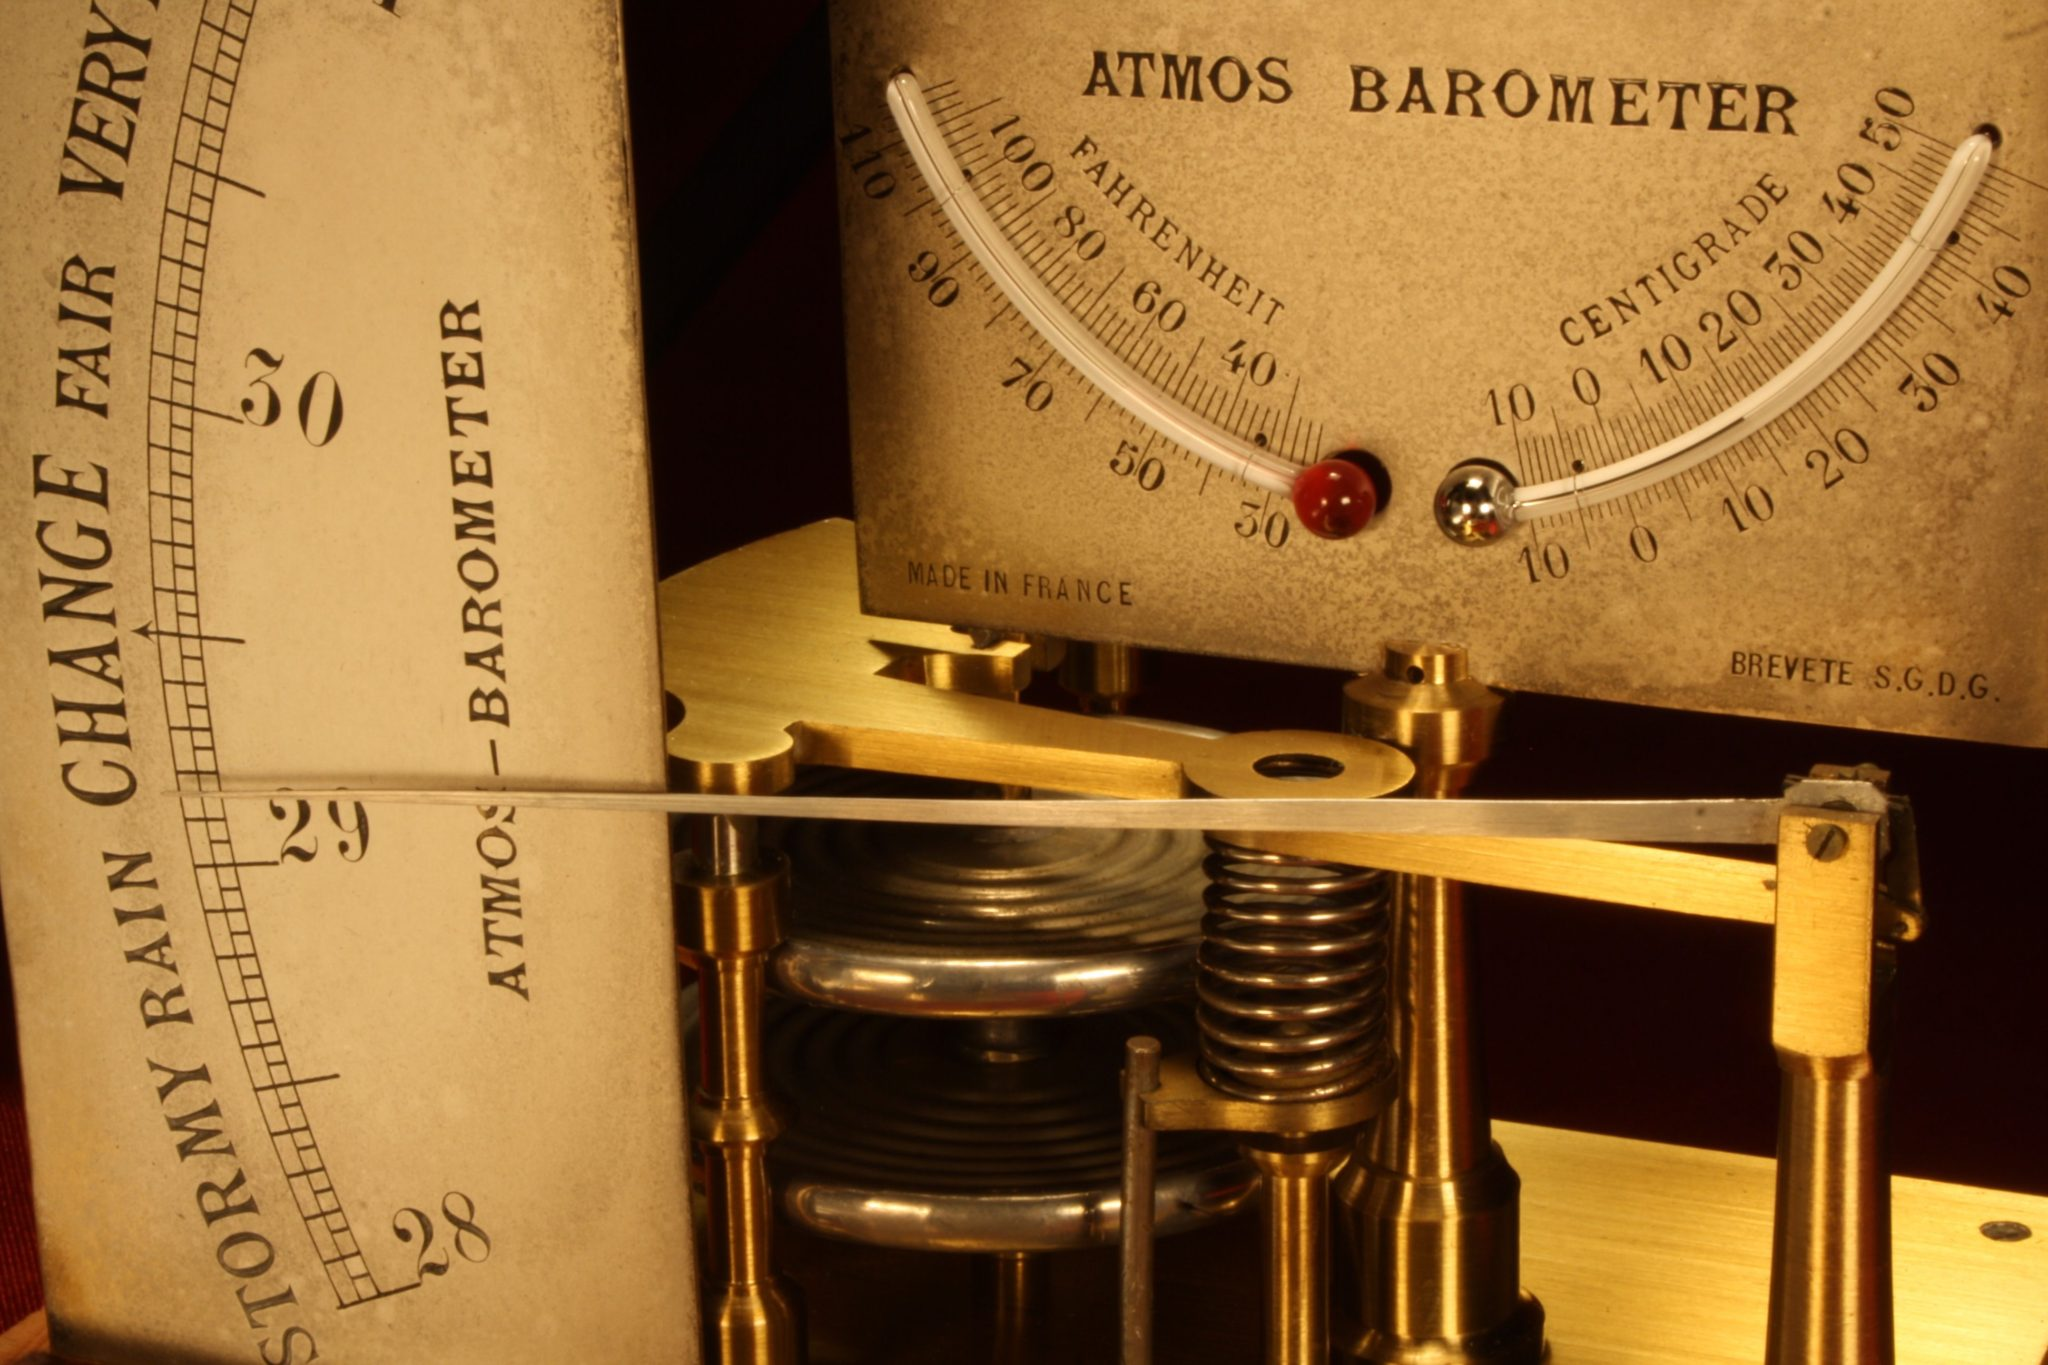 Image of French Atmos Barometer c1875